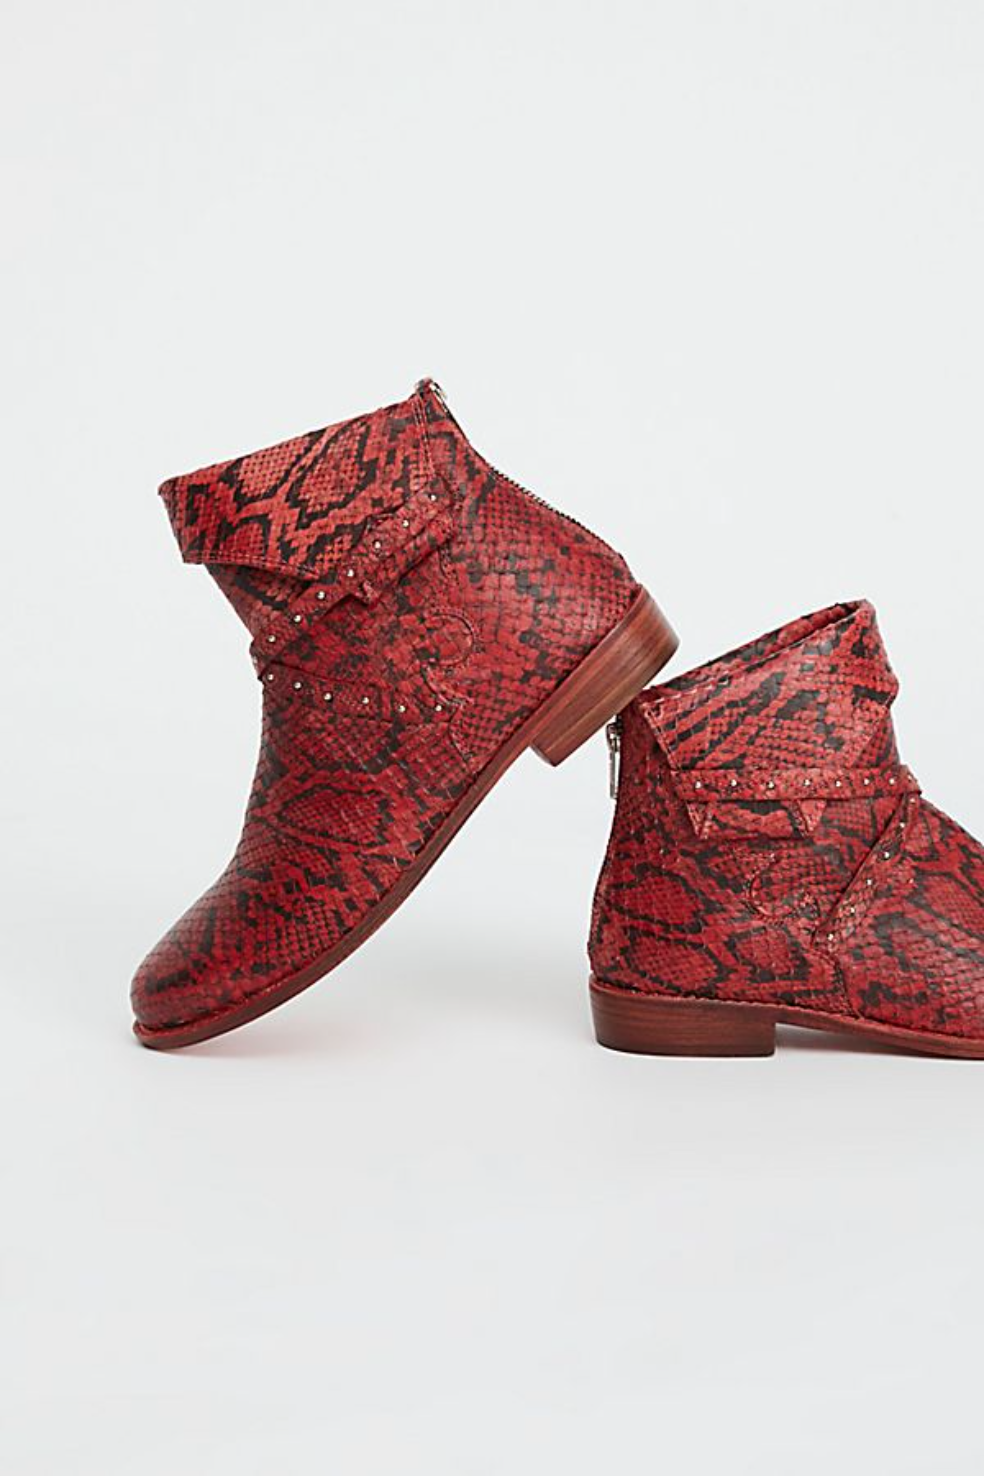 FREE PEOPLE RED RED RED ALAMOSA SLOUCHY LEATHER CUFFED STUDDED ANKLE BOOT EU 38   8 5556e0